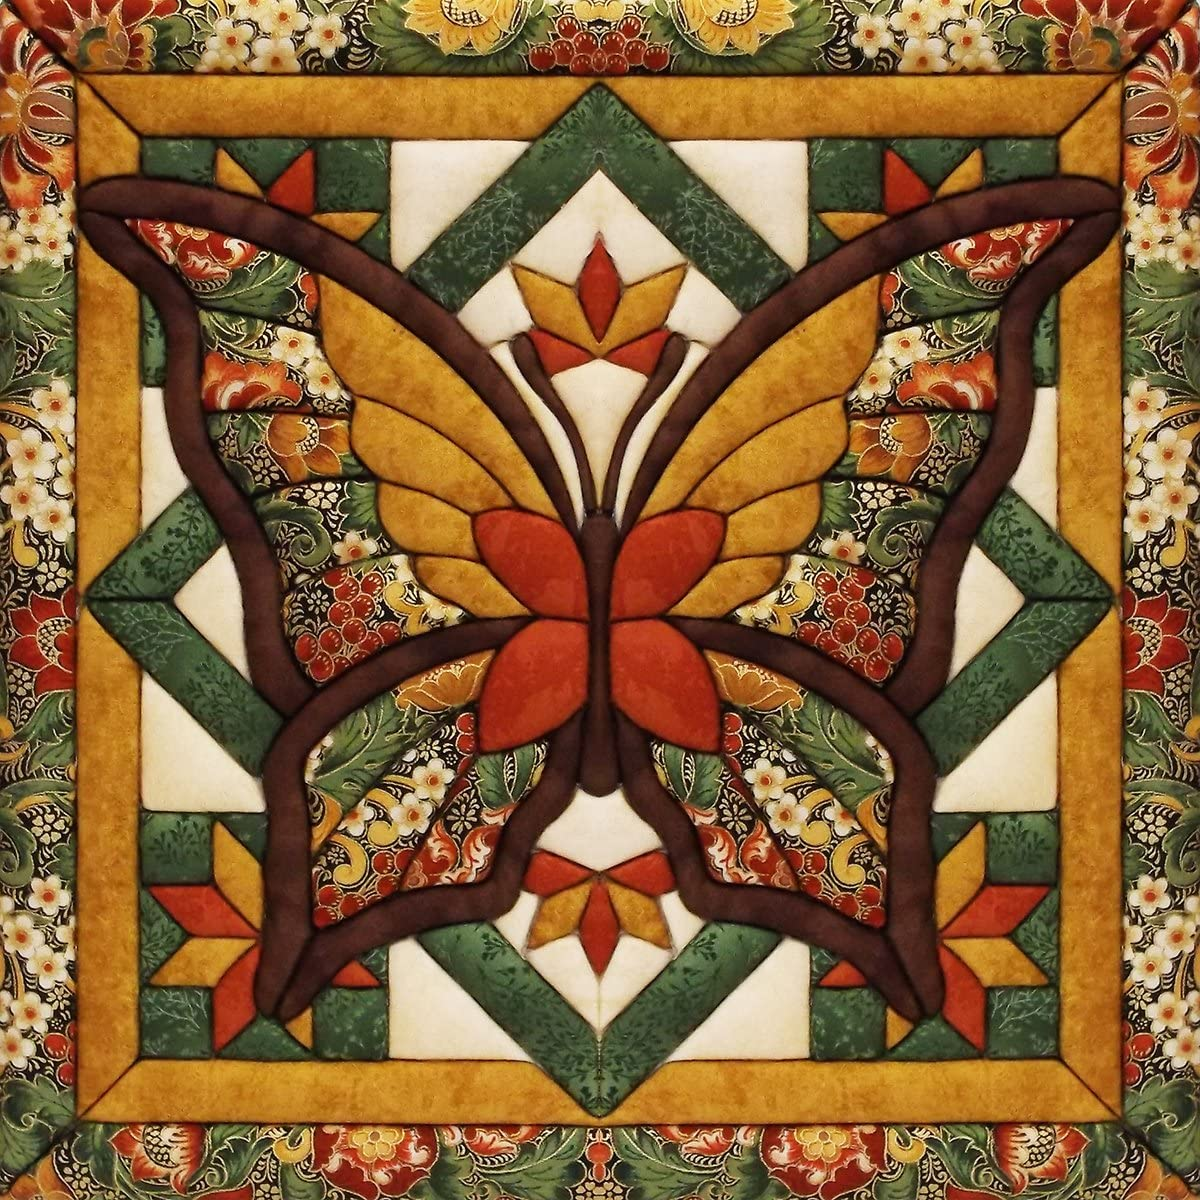 Wall Quilt Kit Butterfly Magic 12 x 12inch Flower